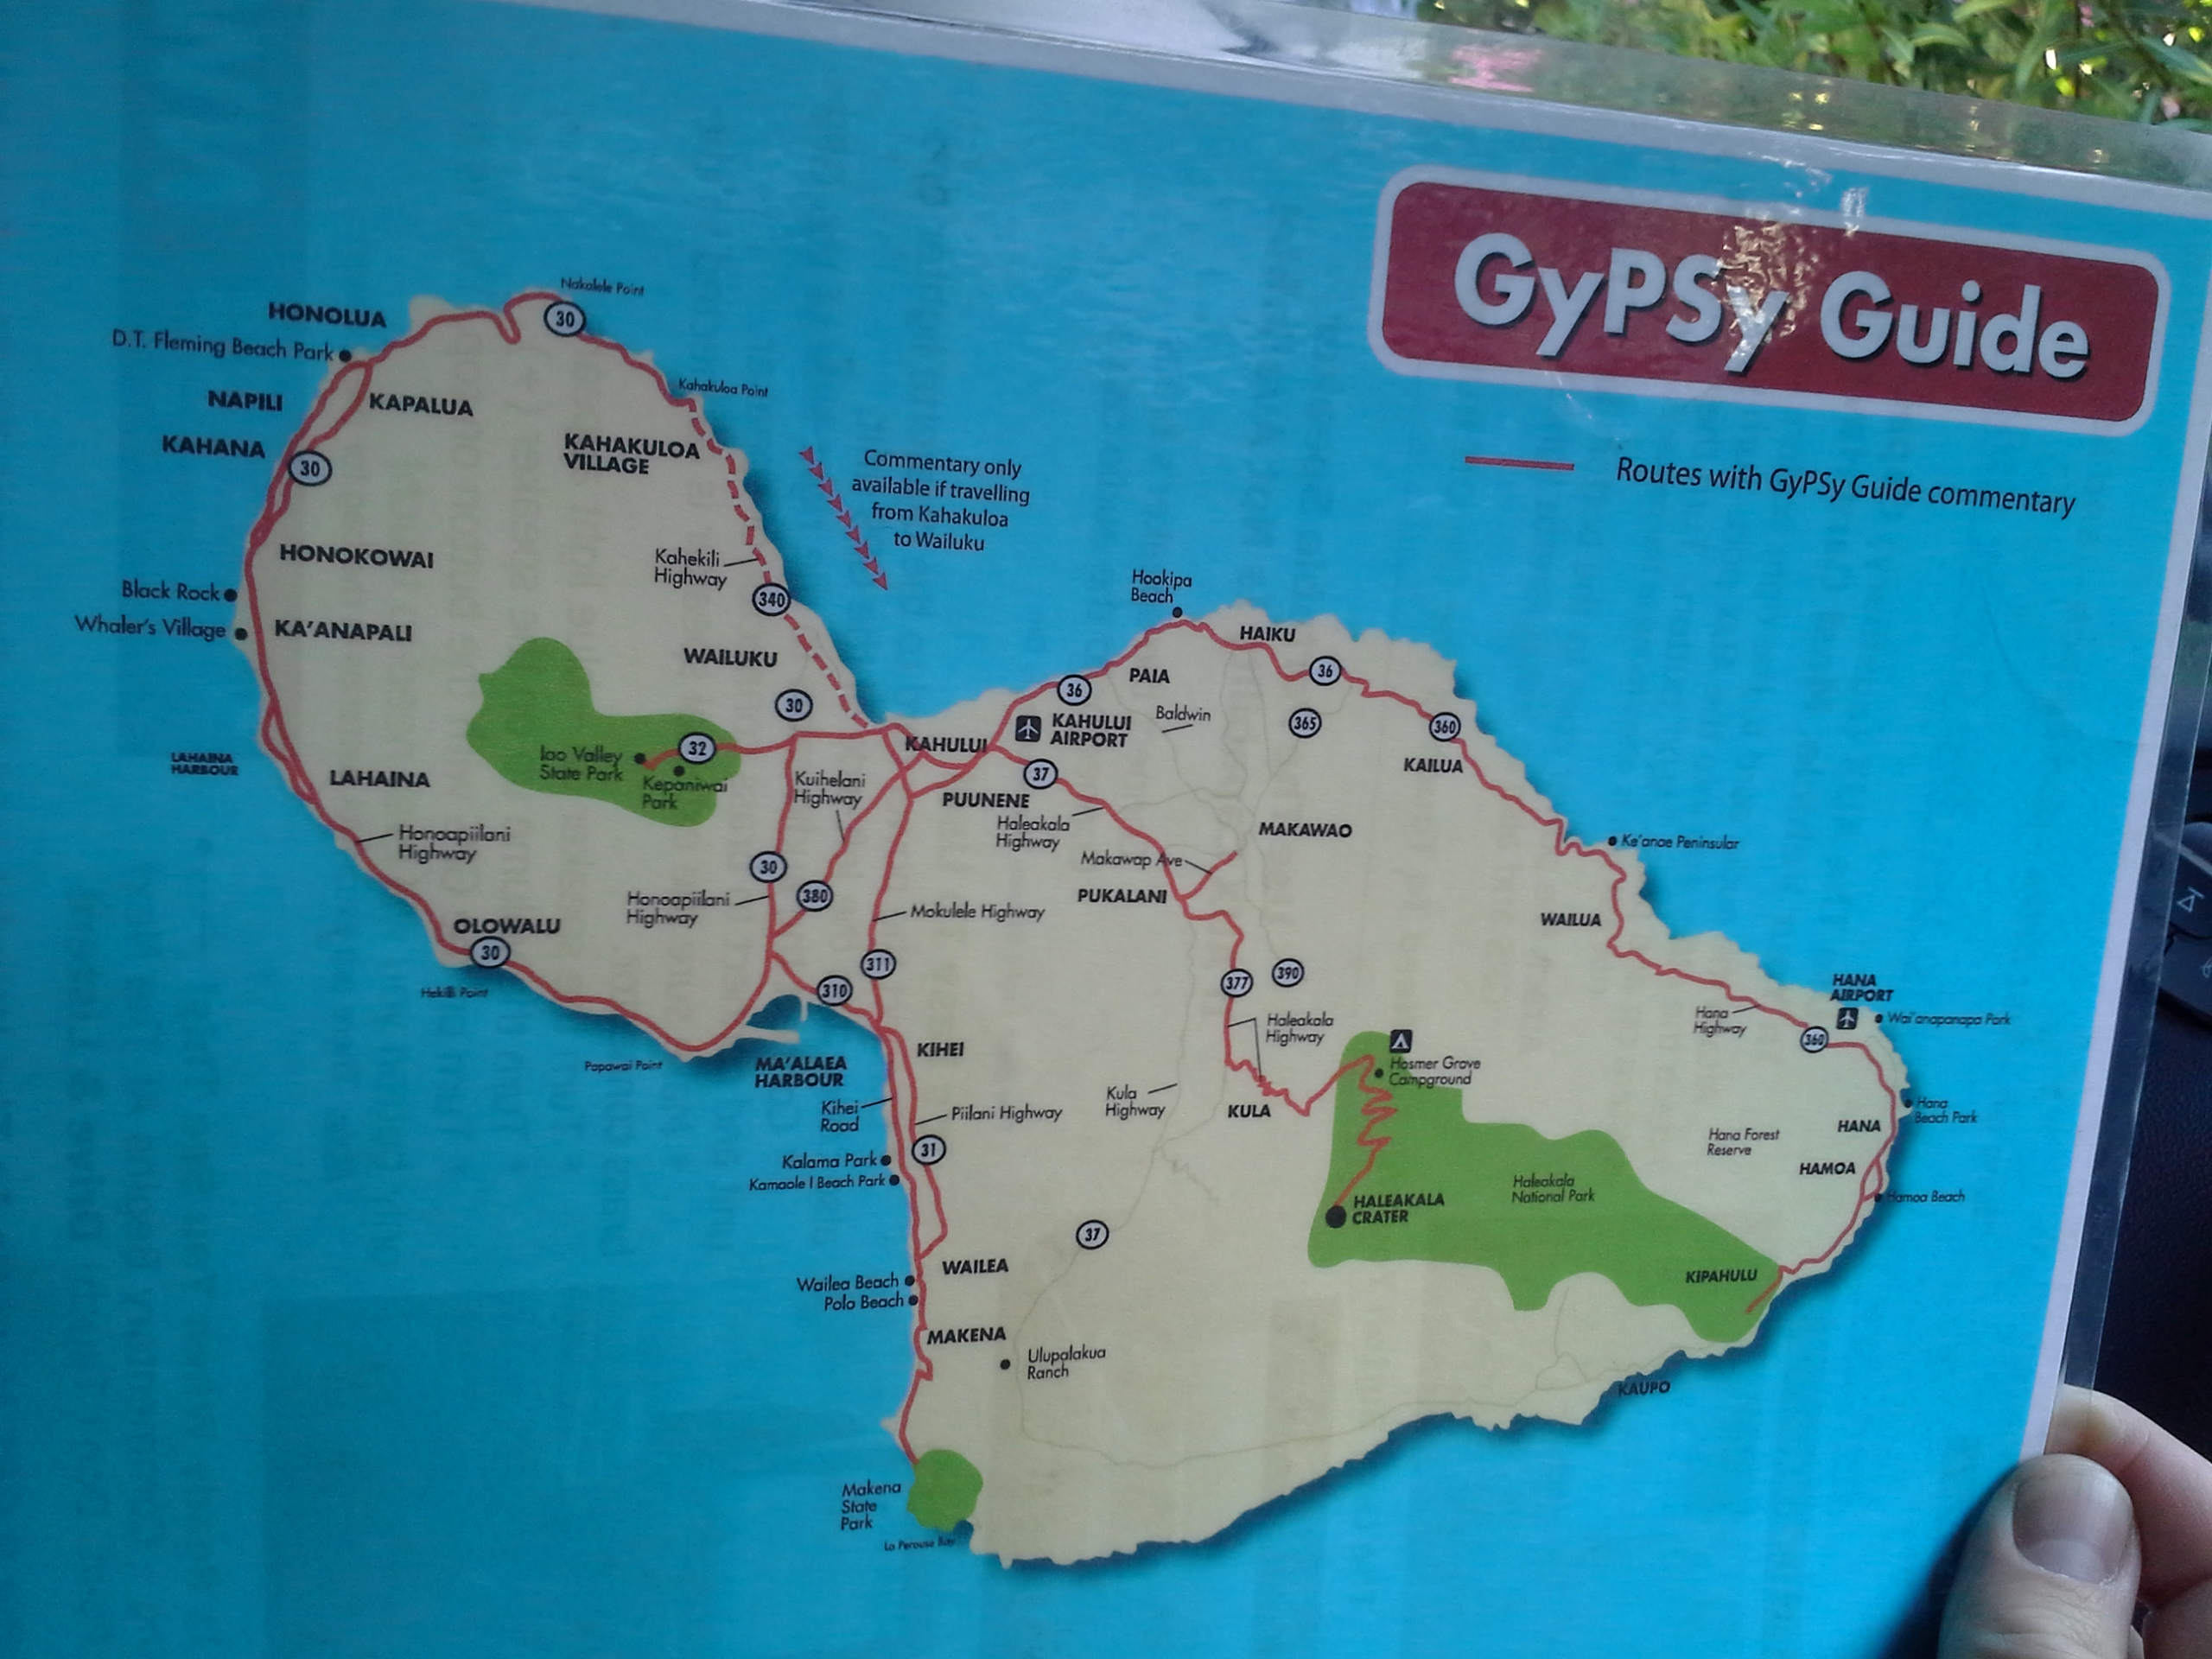 GyPSY Guide Map to Maui